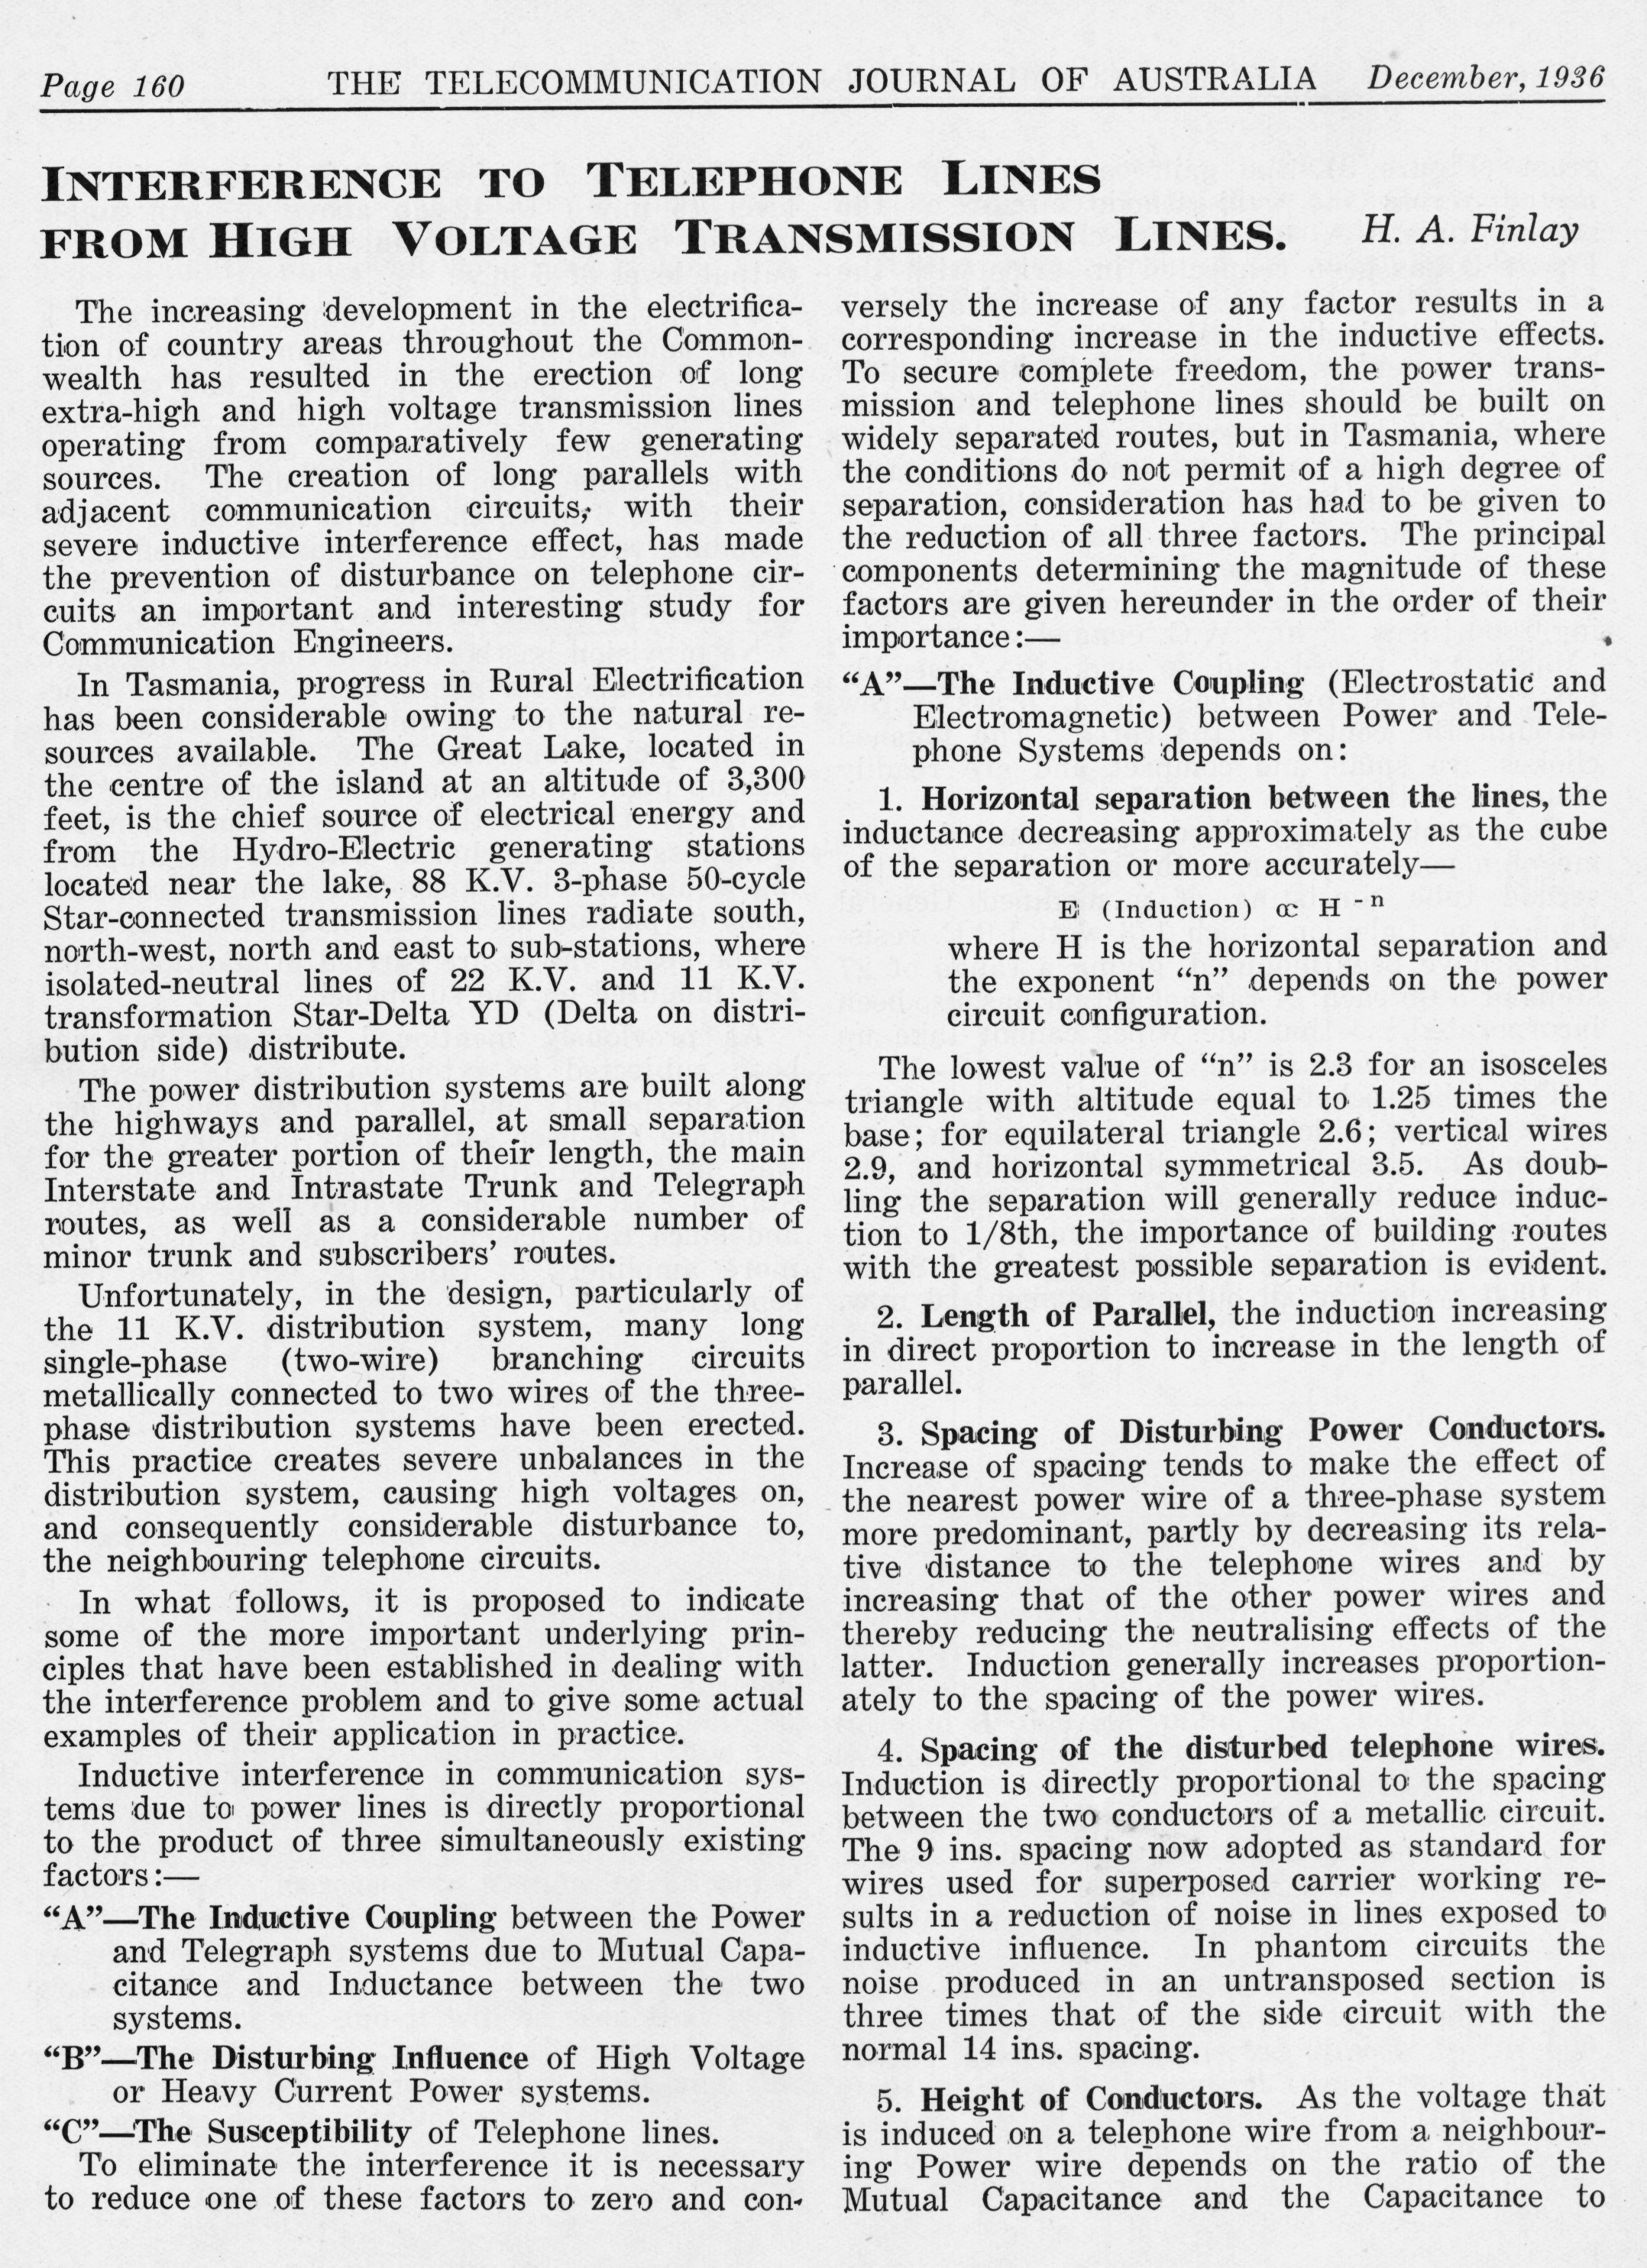 Page one of historical paper